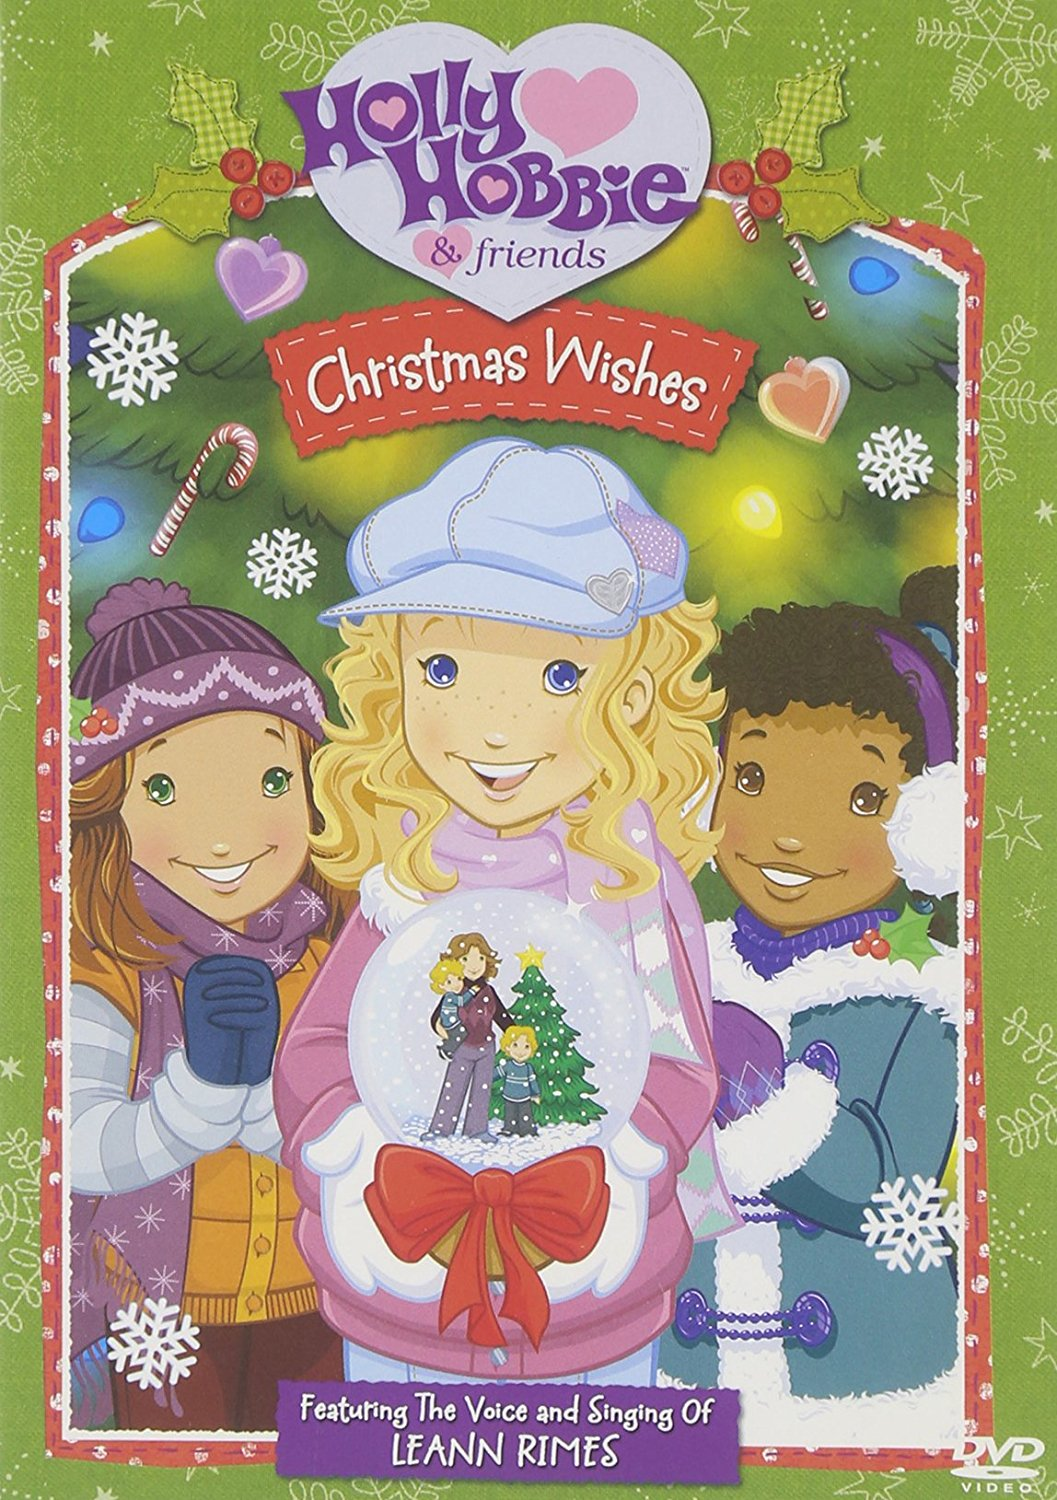 holly hobbie and friends christmas wishes video 2006 imdb - Christmas Wishes Video